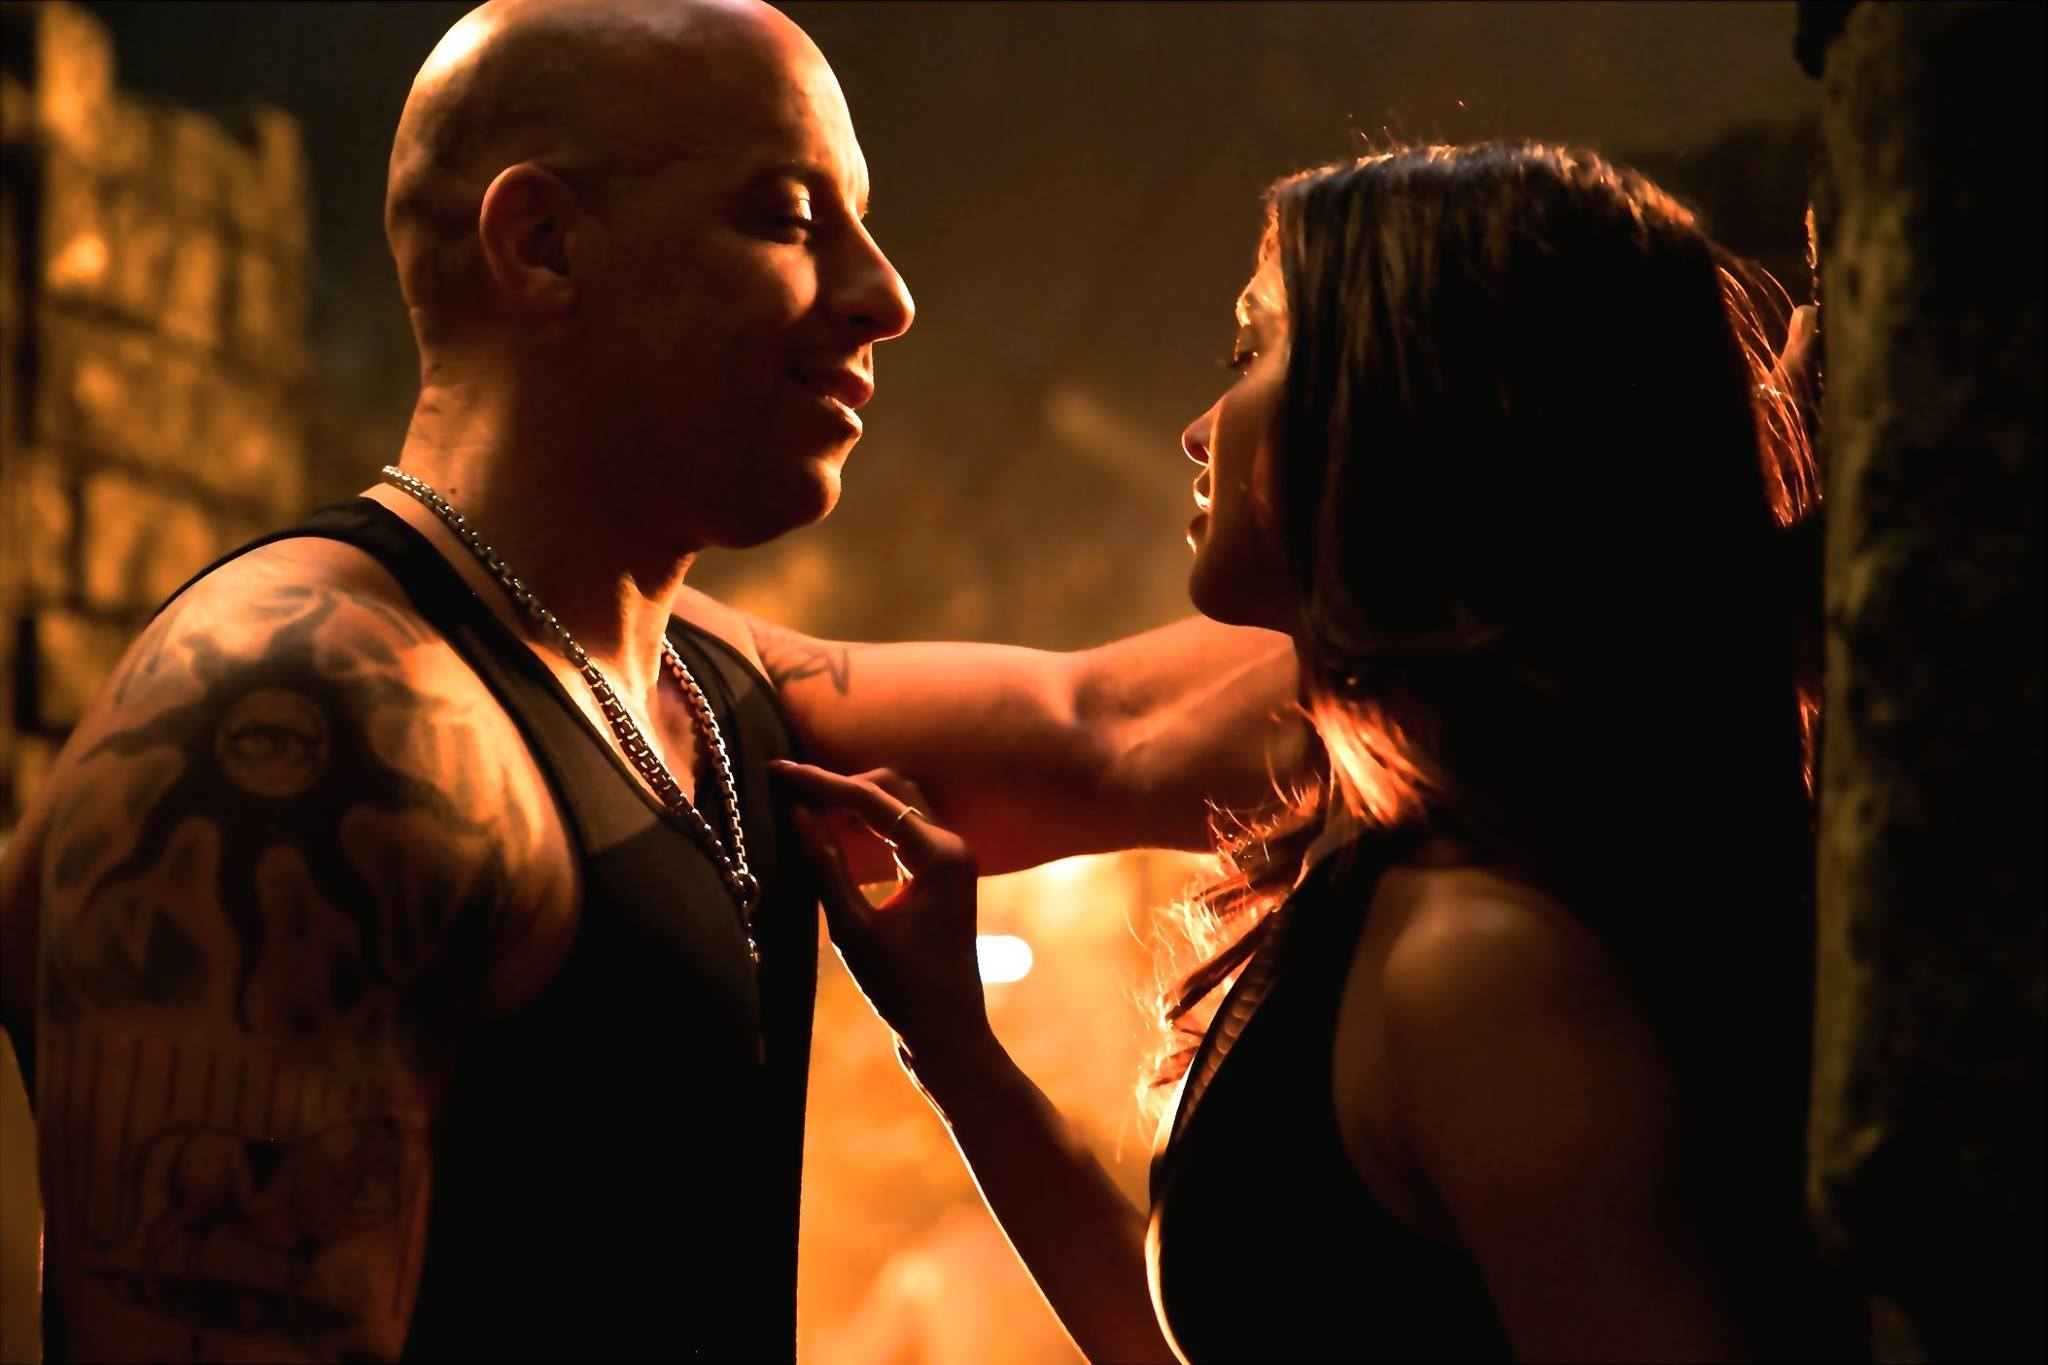 Vin Diesel Shares New Set Photos From Action Sequel xXx: The Return Of Xander Cage